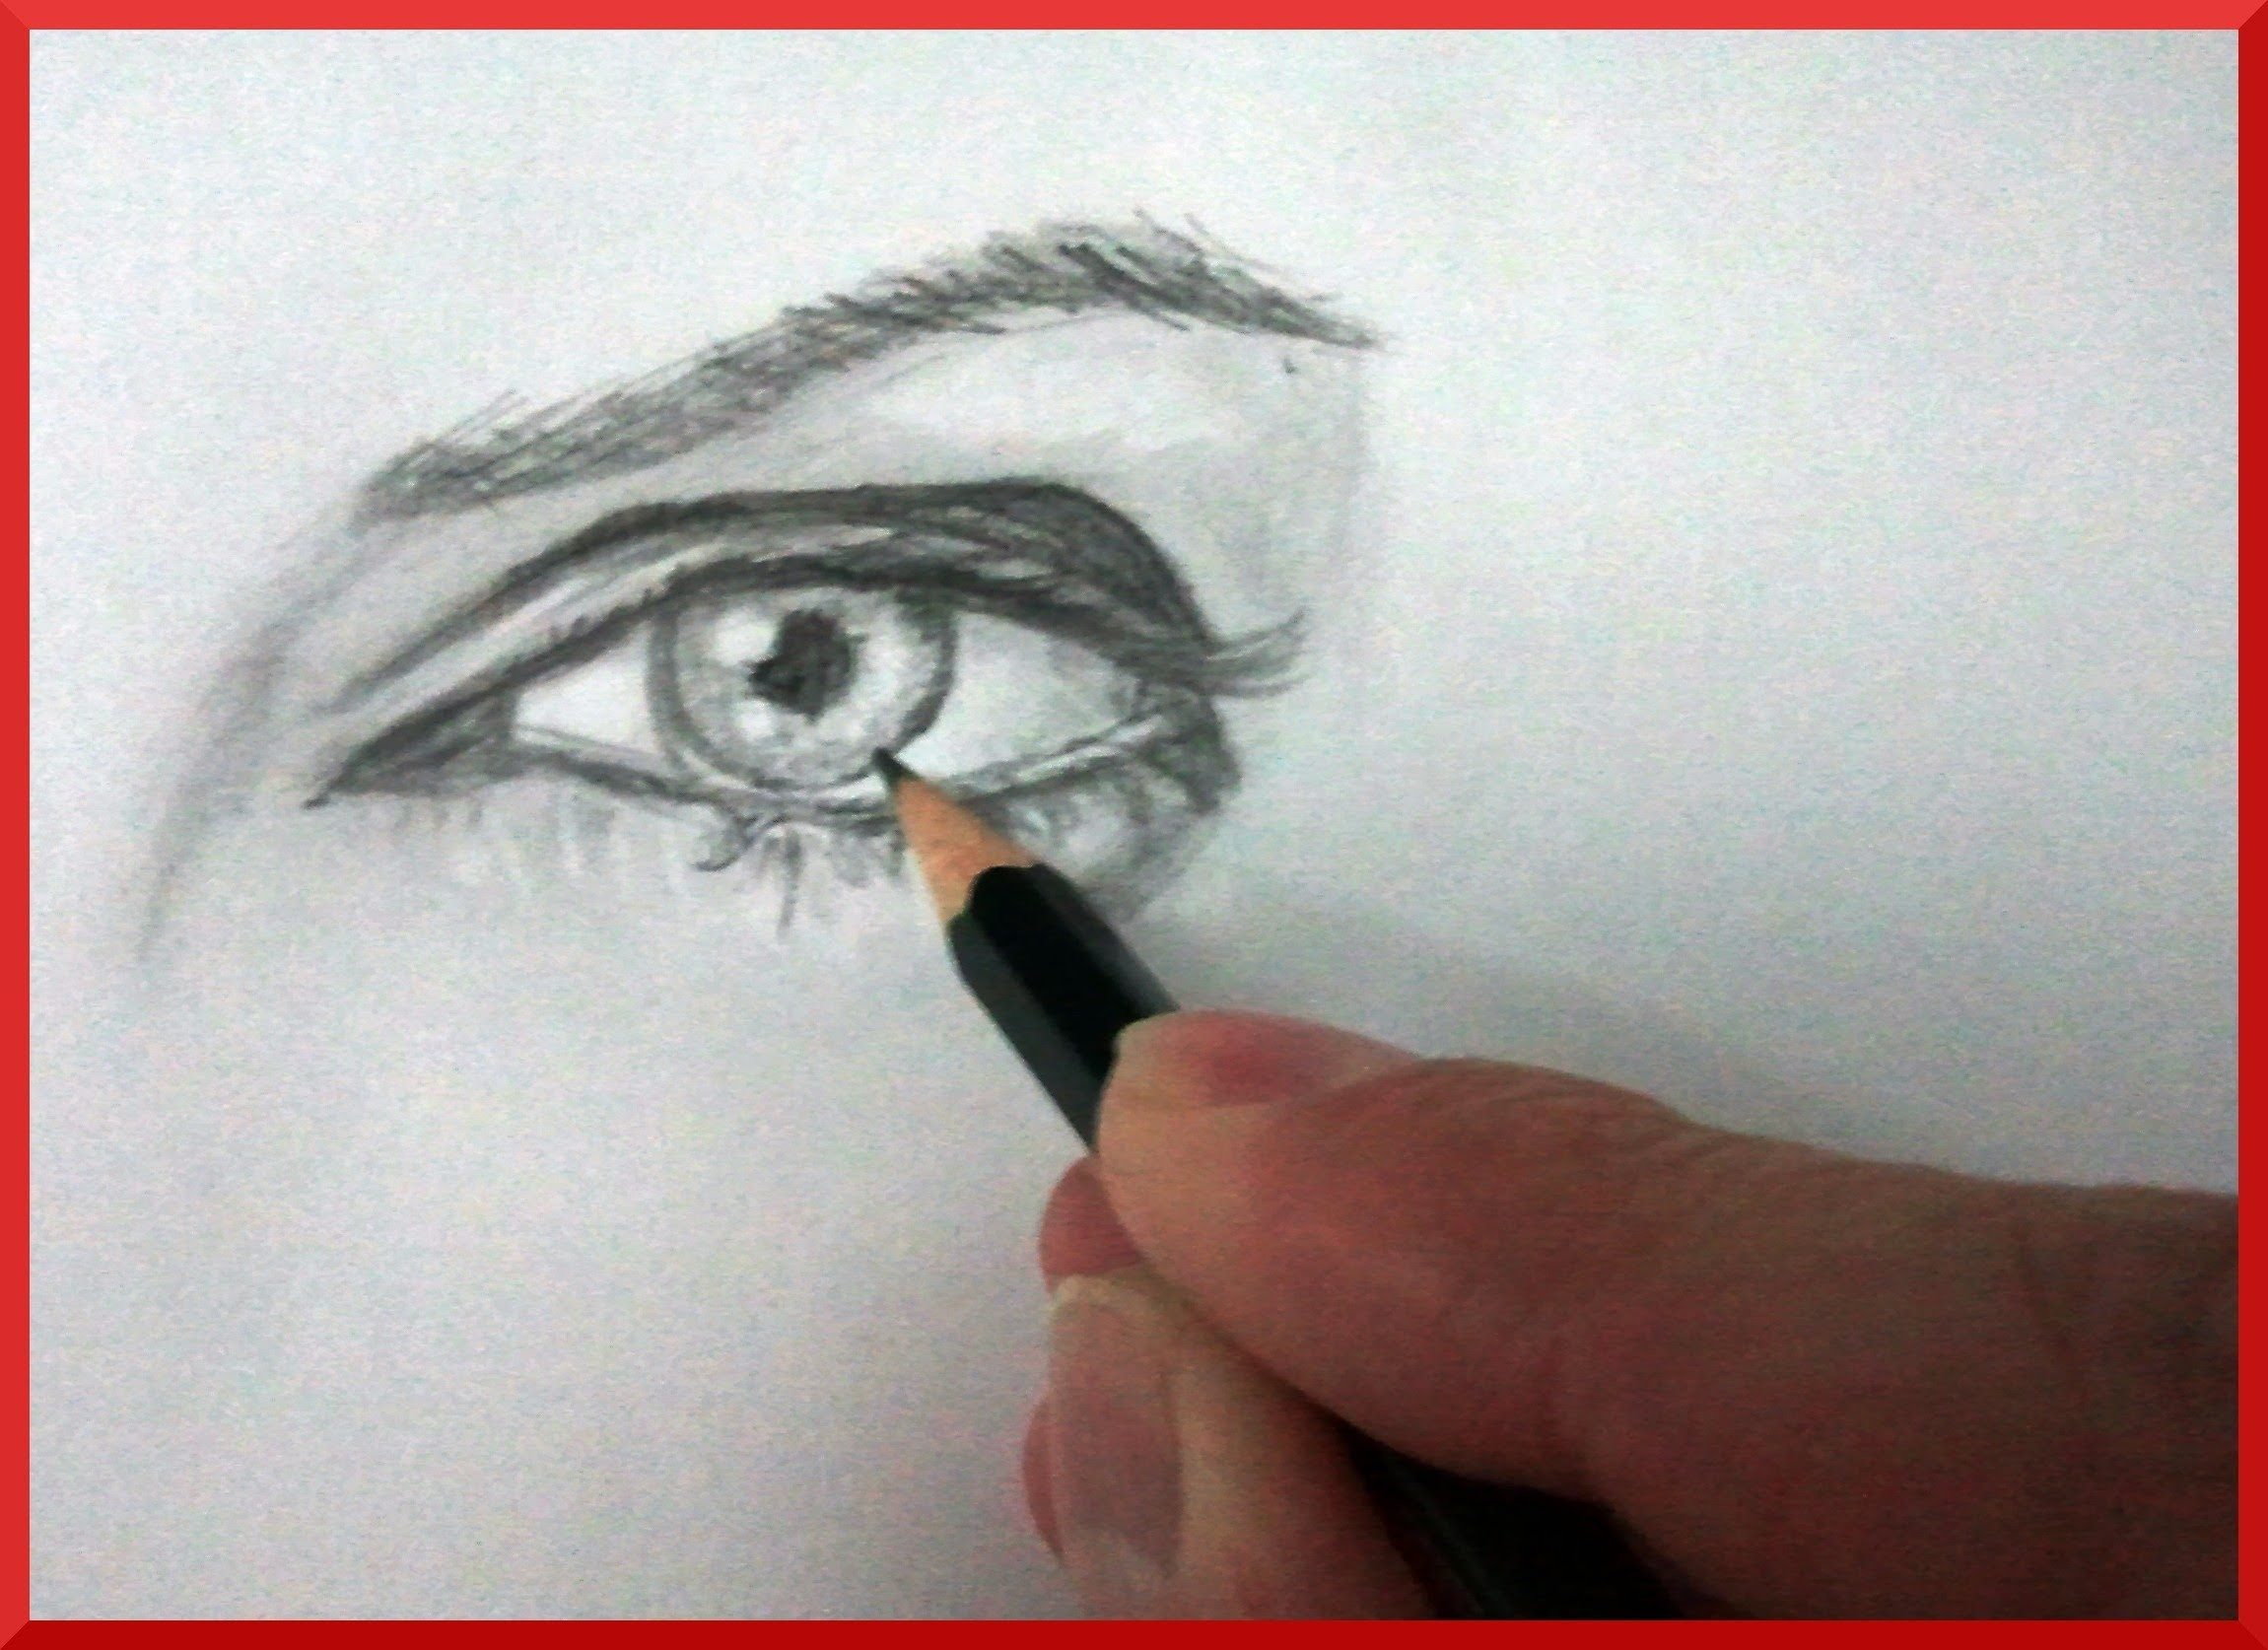 Como Dibujar Ojos (Mejor) How to Draw Eyes (Better): Técnicas de Dibujo y Retrato